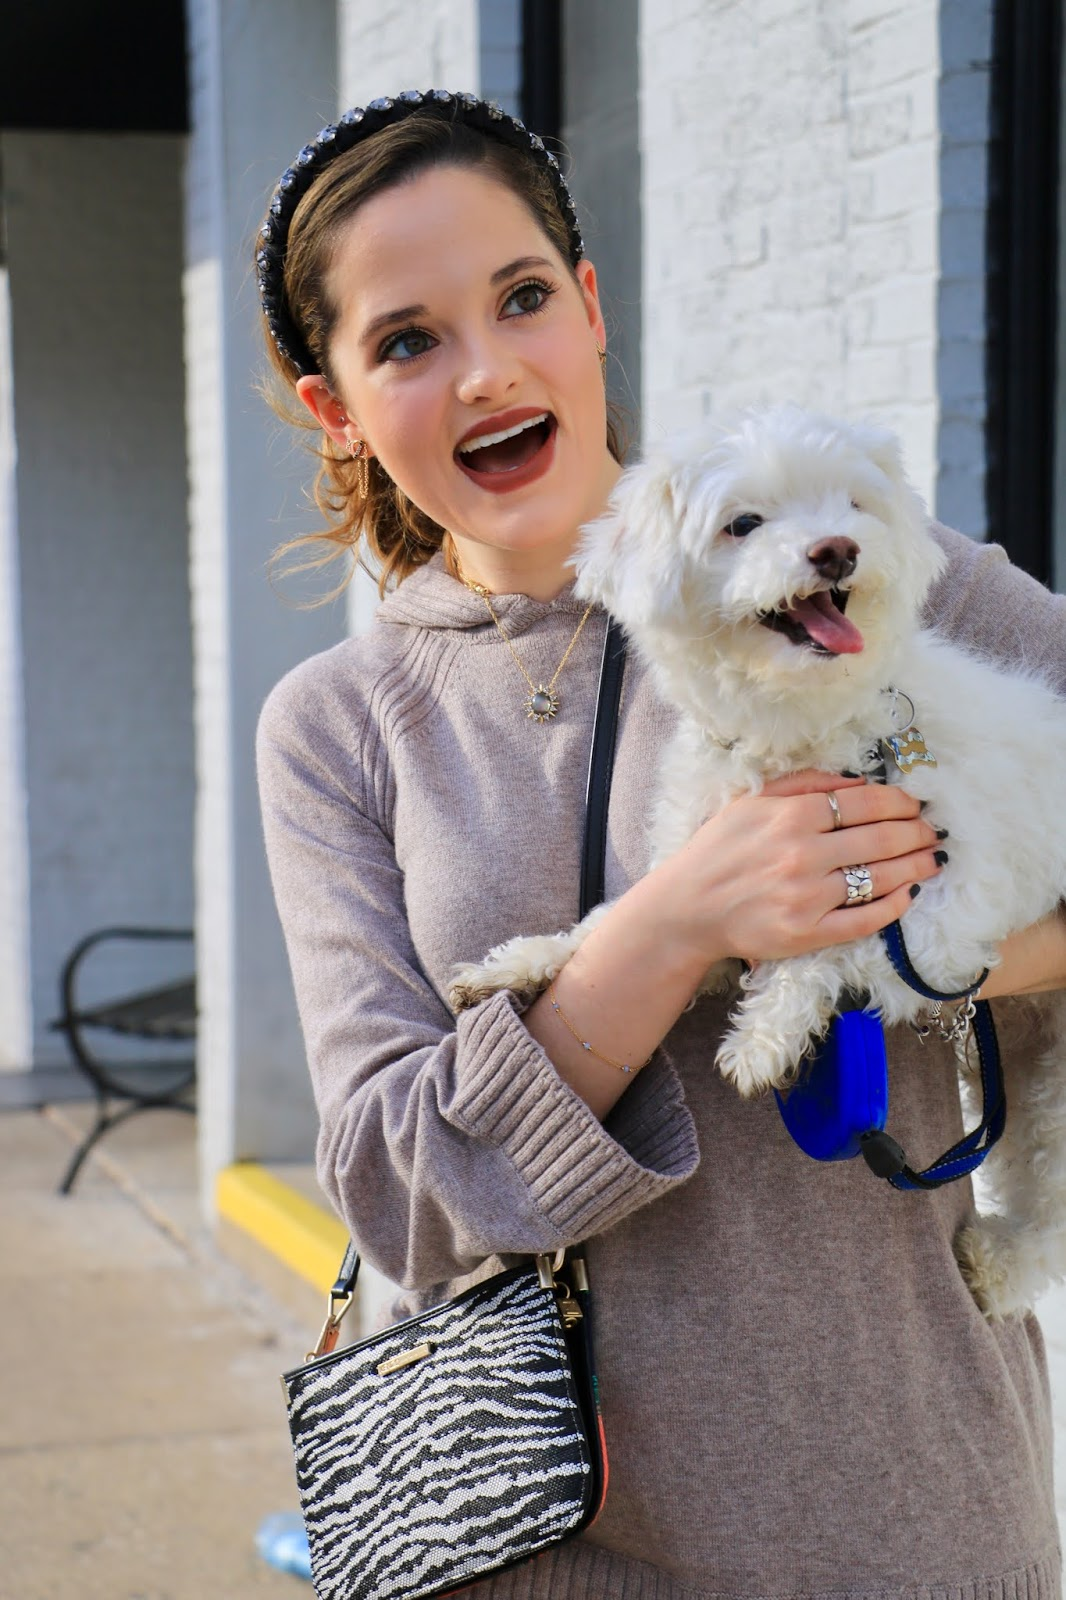 Nyc fashion blogger Kathleen Harper with her maltese bichon mix rescue dog.